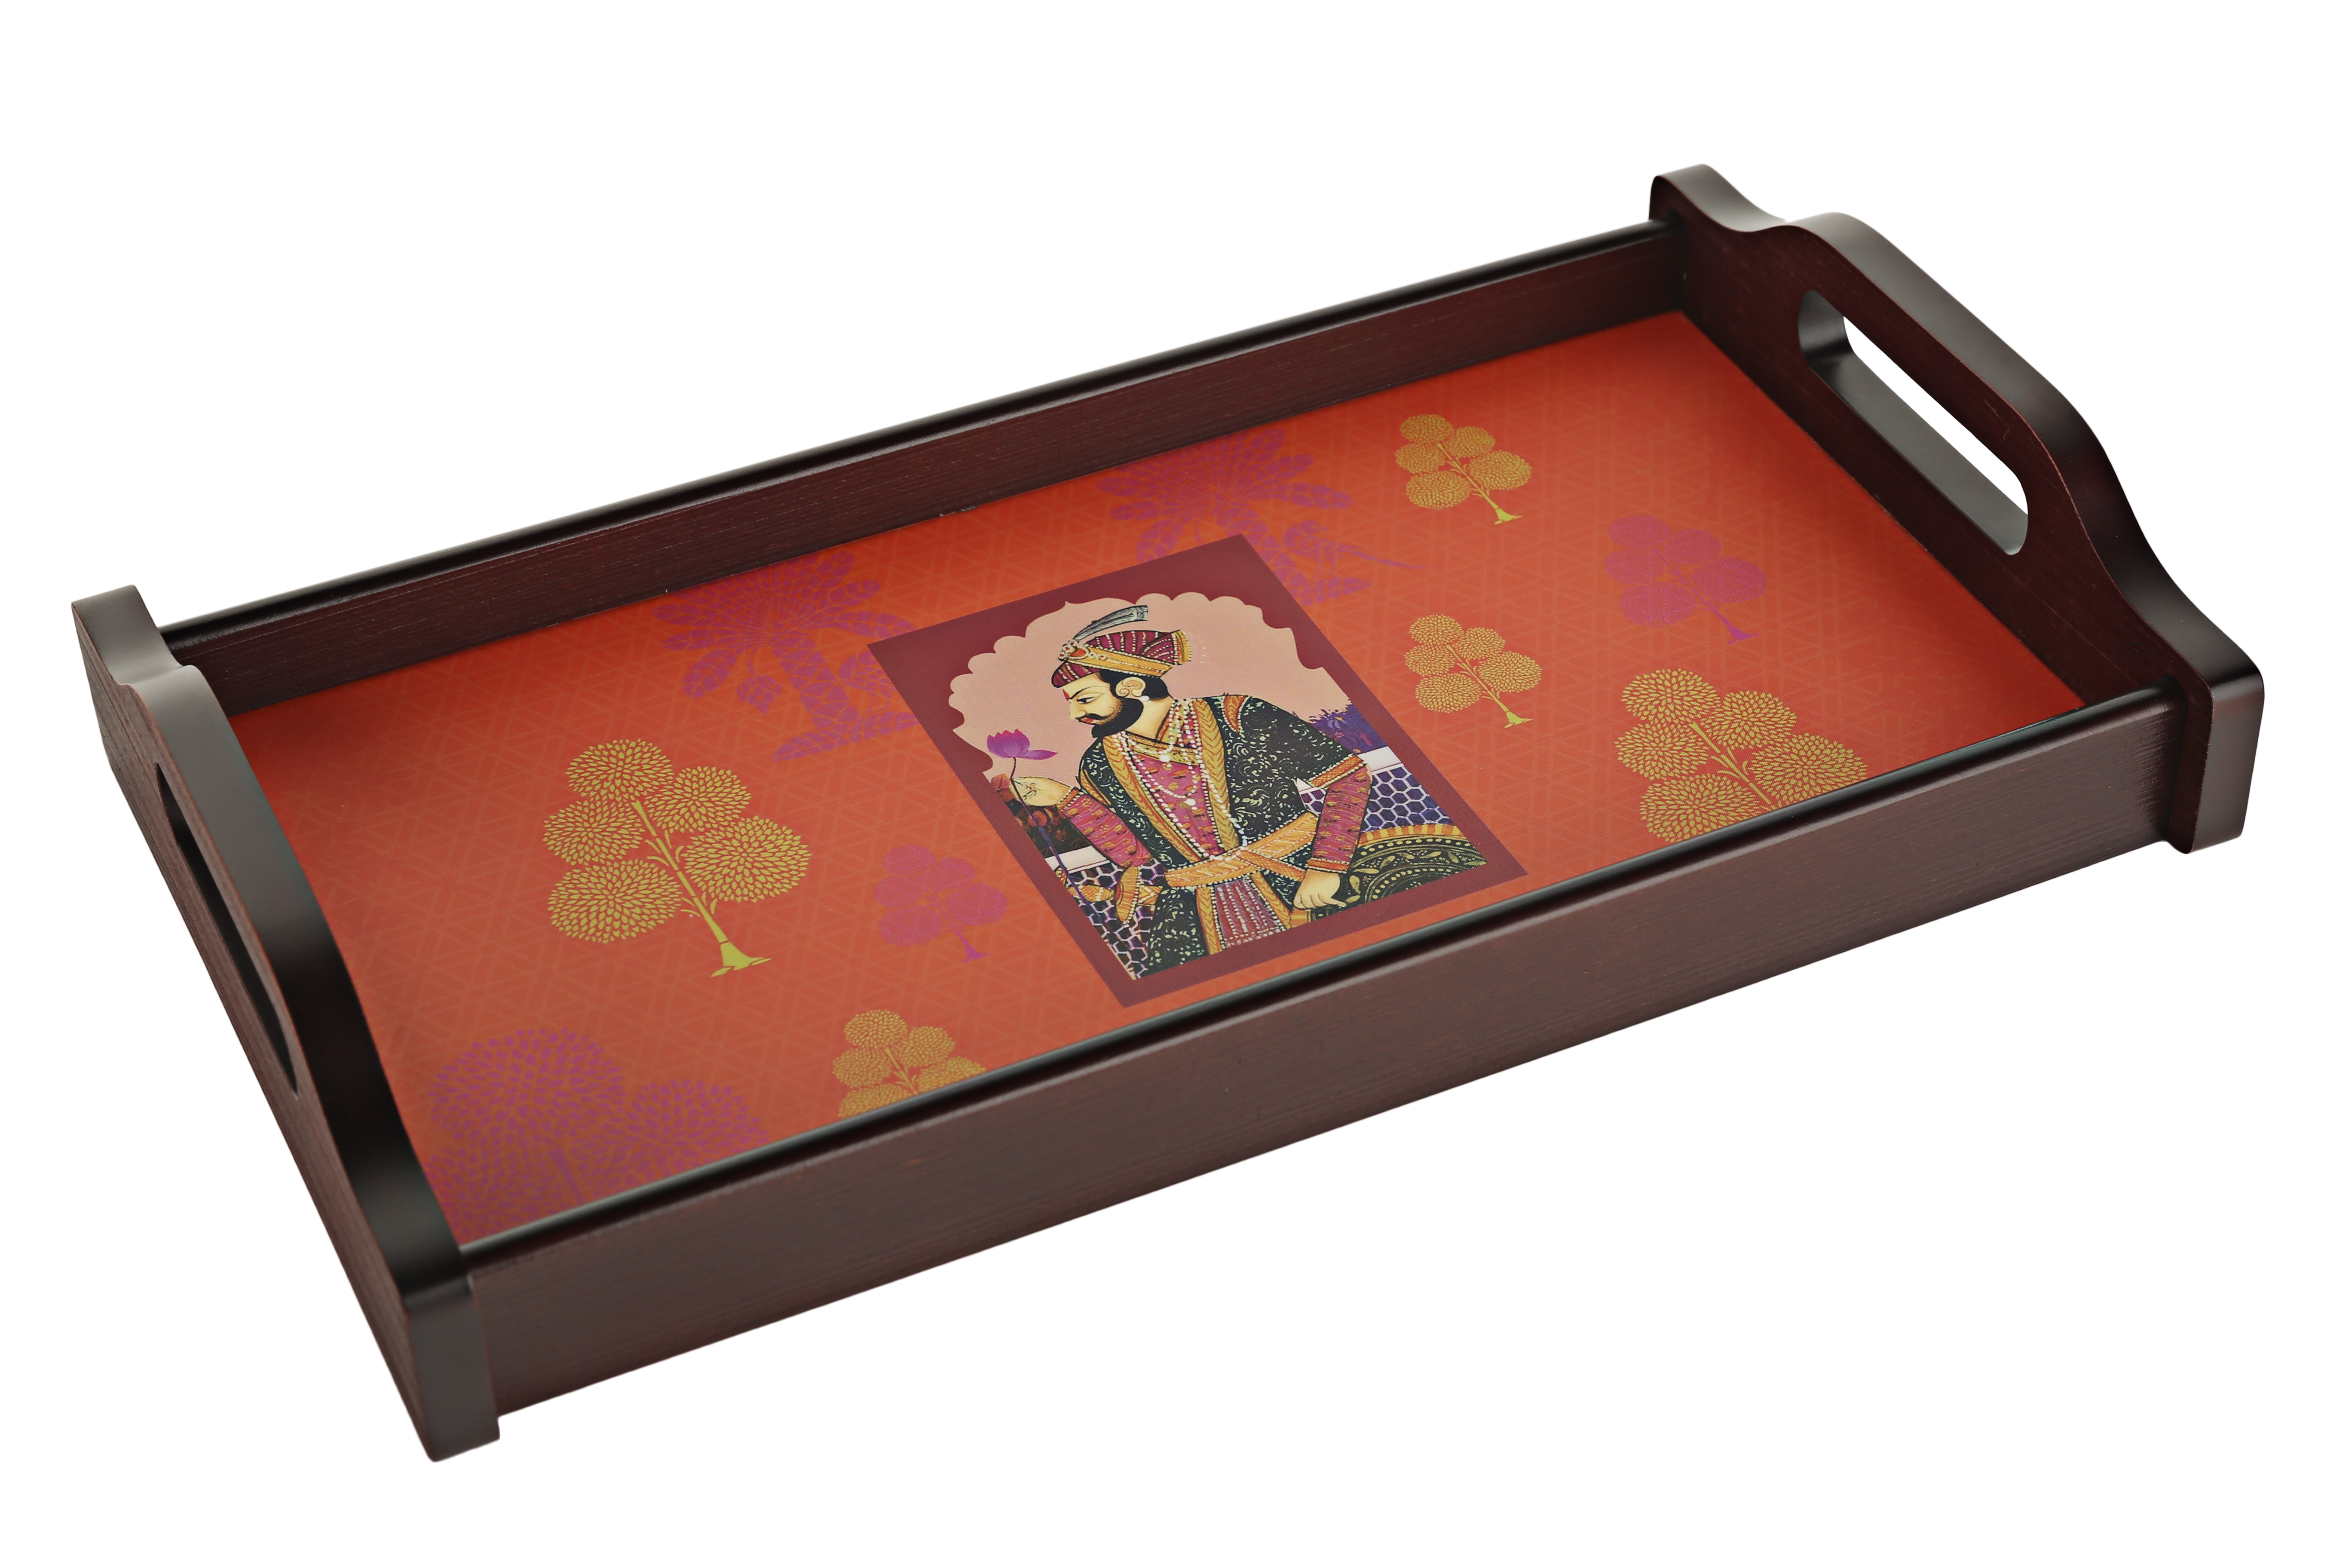 Raja Rani Print Tray Timber Wood Trays in Tangello Colour by Living Essence